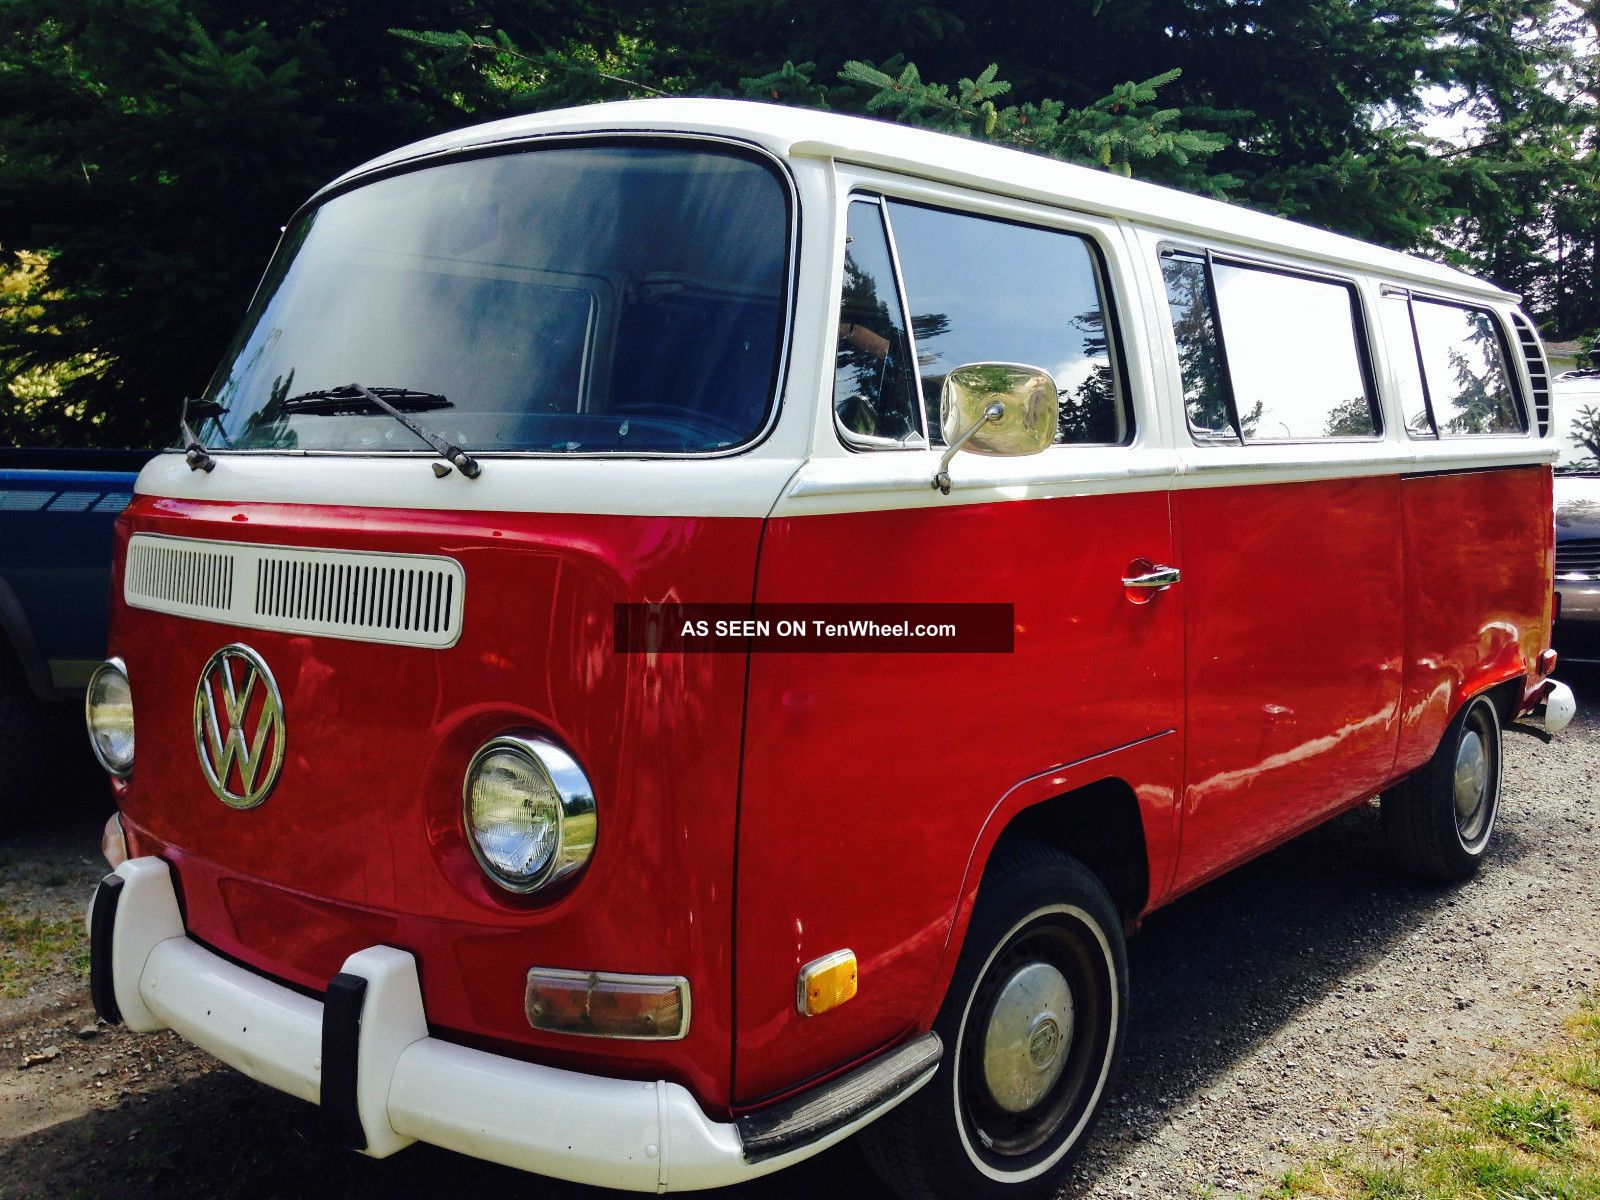 1971 Vw Bus,  Type 2 Transporter,  Seats 9 Cherry Picked,  Rare Find, Bus/Vanagon photo